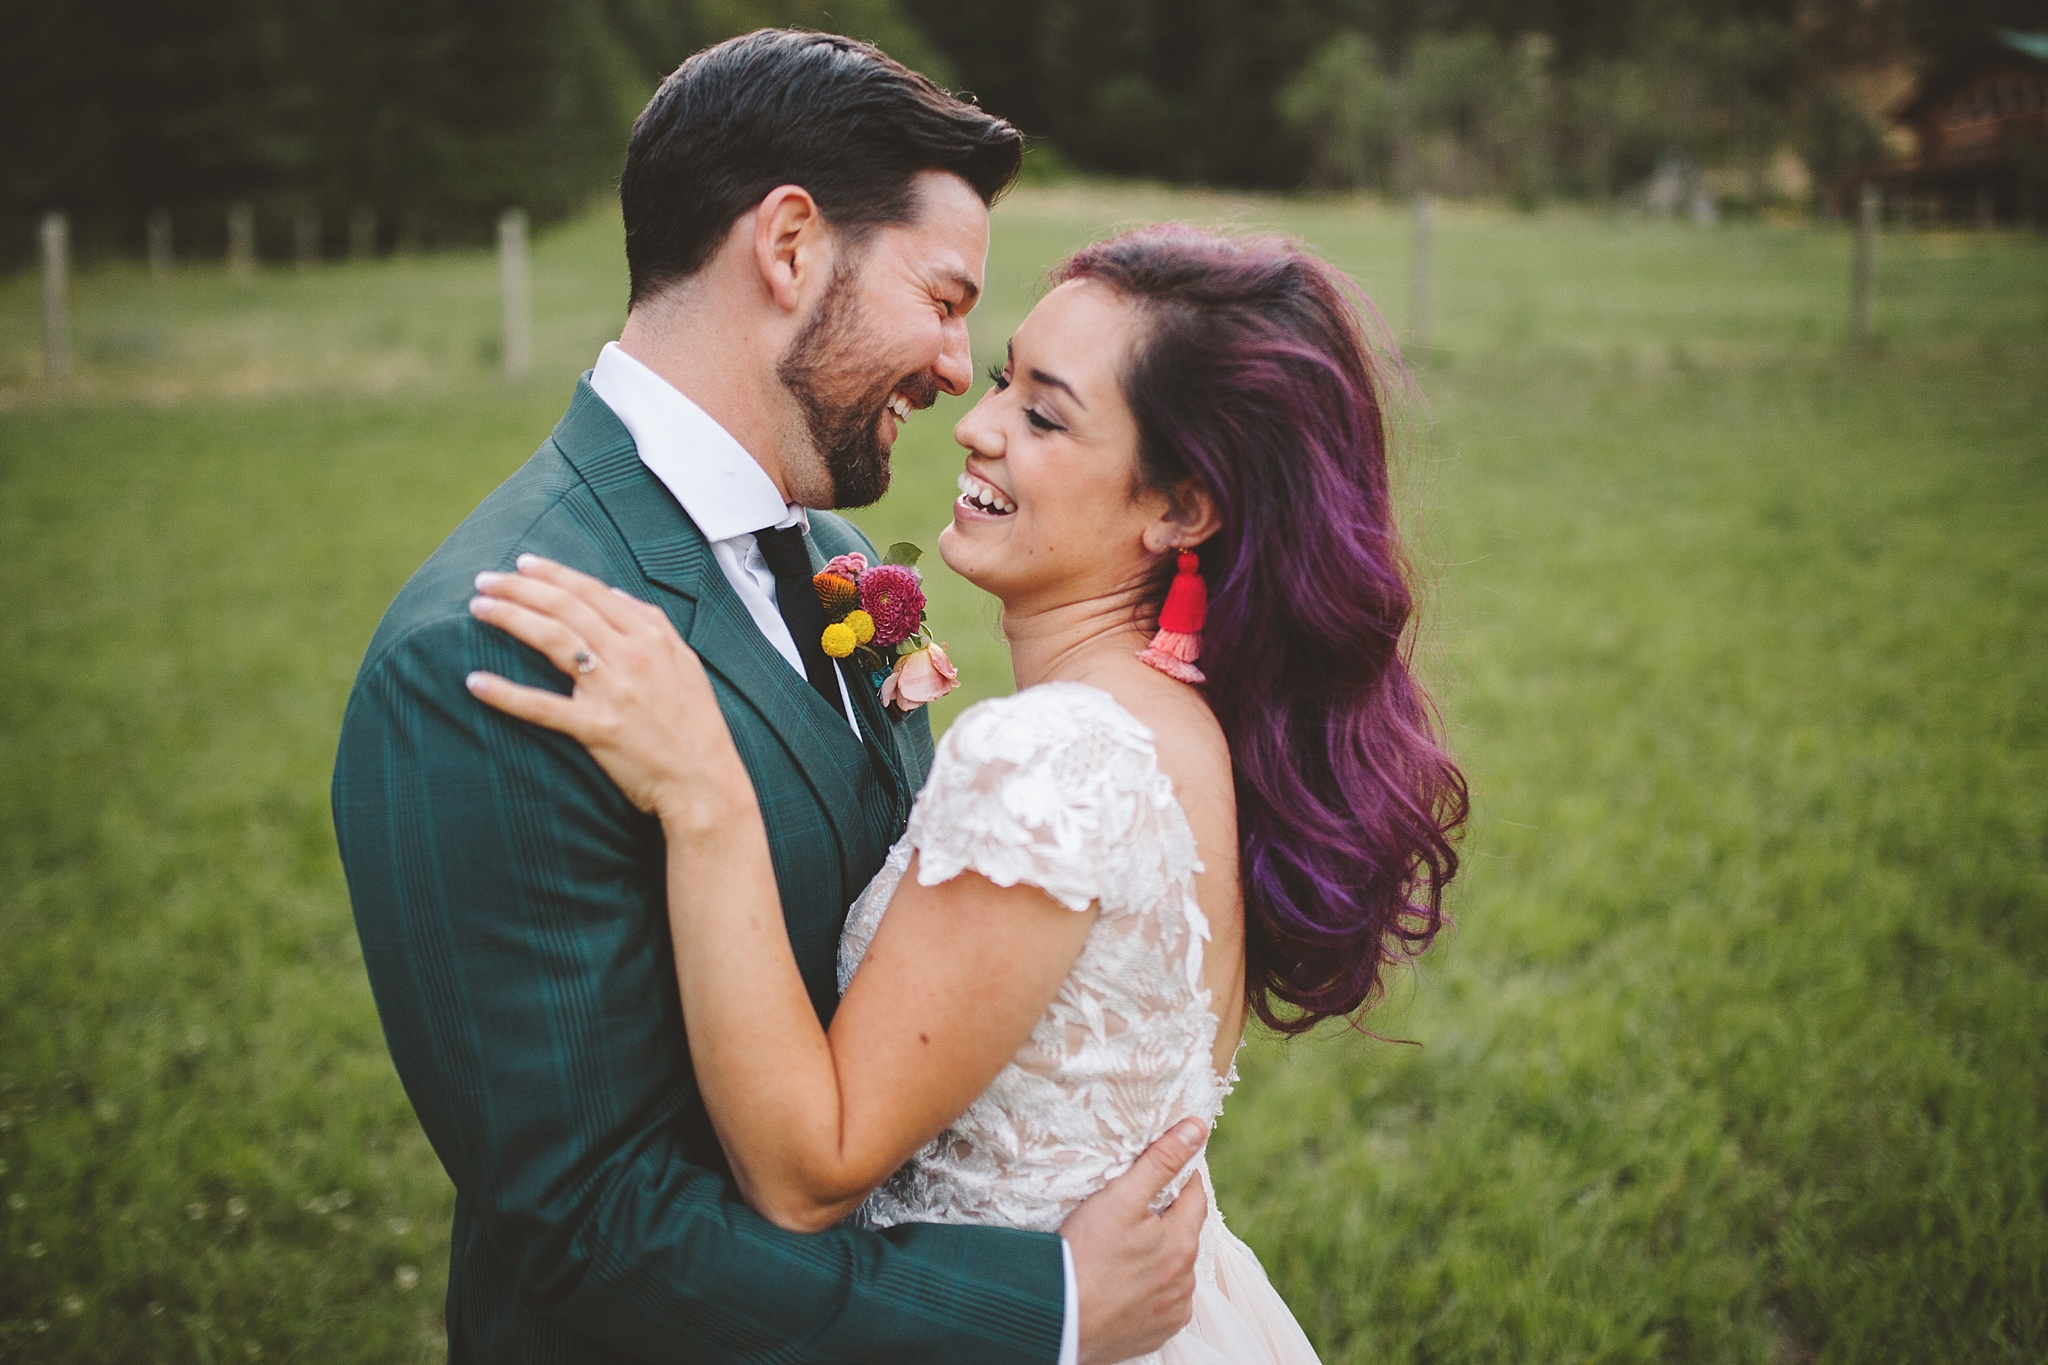 candid moments between bride and groom